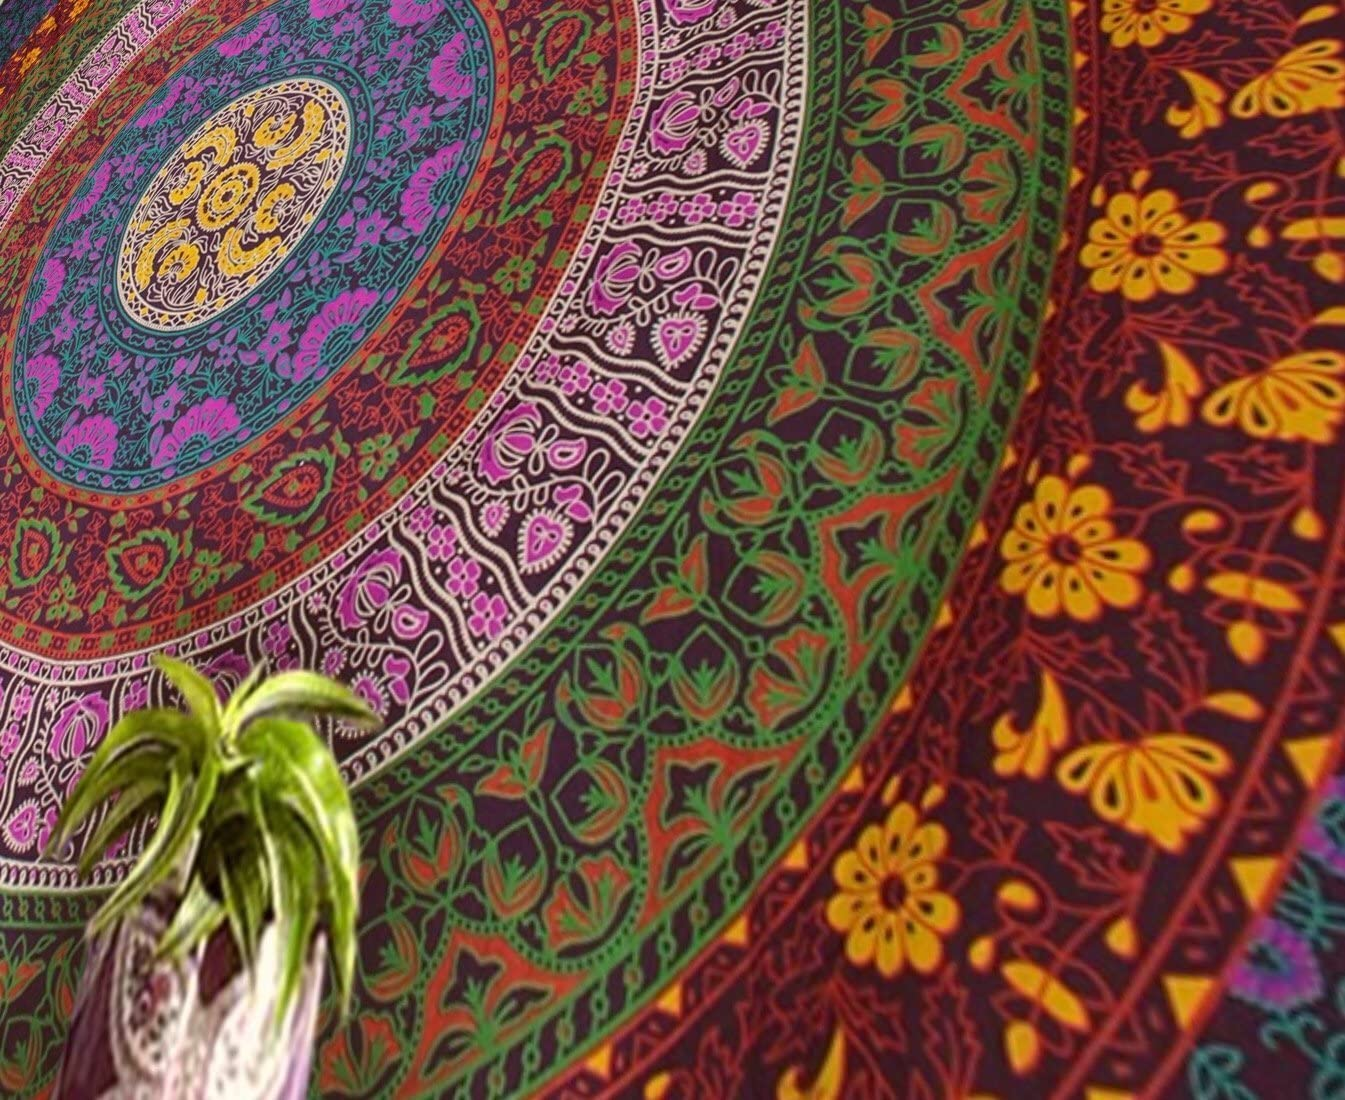 Popular Handicrafts Twin Hippie Tapestry, Hippy Mandala Bohemian Tapestries, Indian Dorm Decor, Psychedelic Tapestry Wall Hanging Ethnic Decorative Tapestry (54x84 inches) (Multi Color)